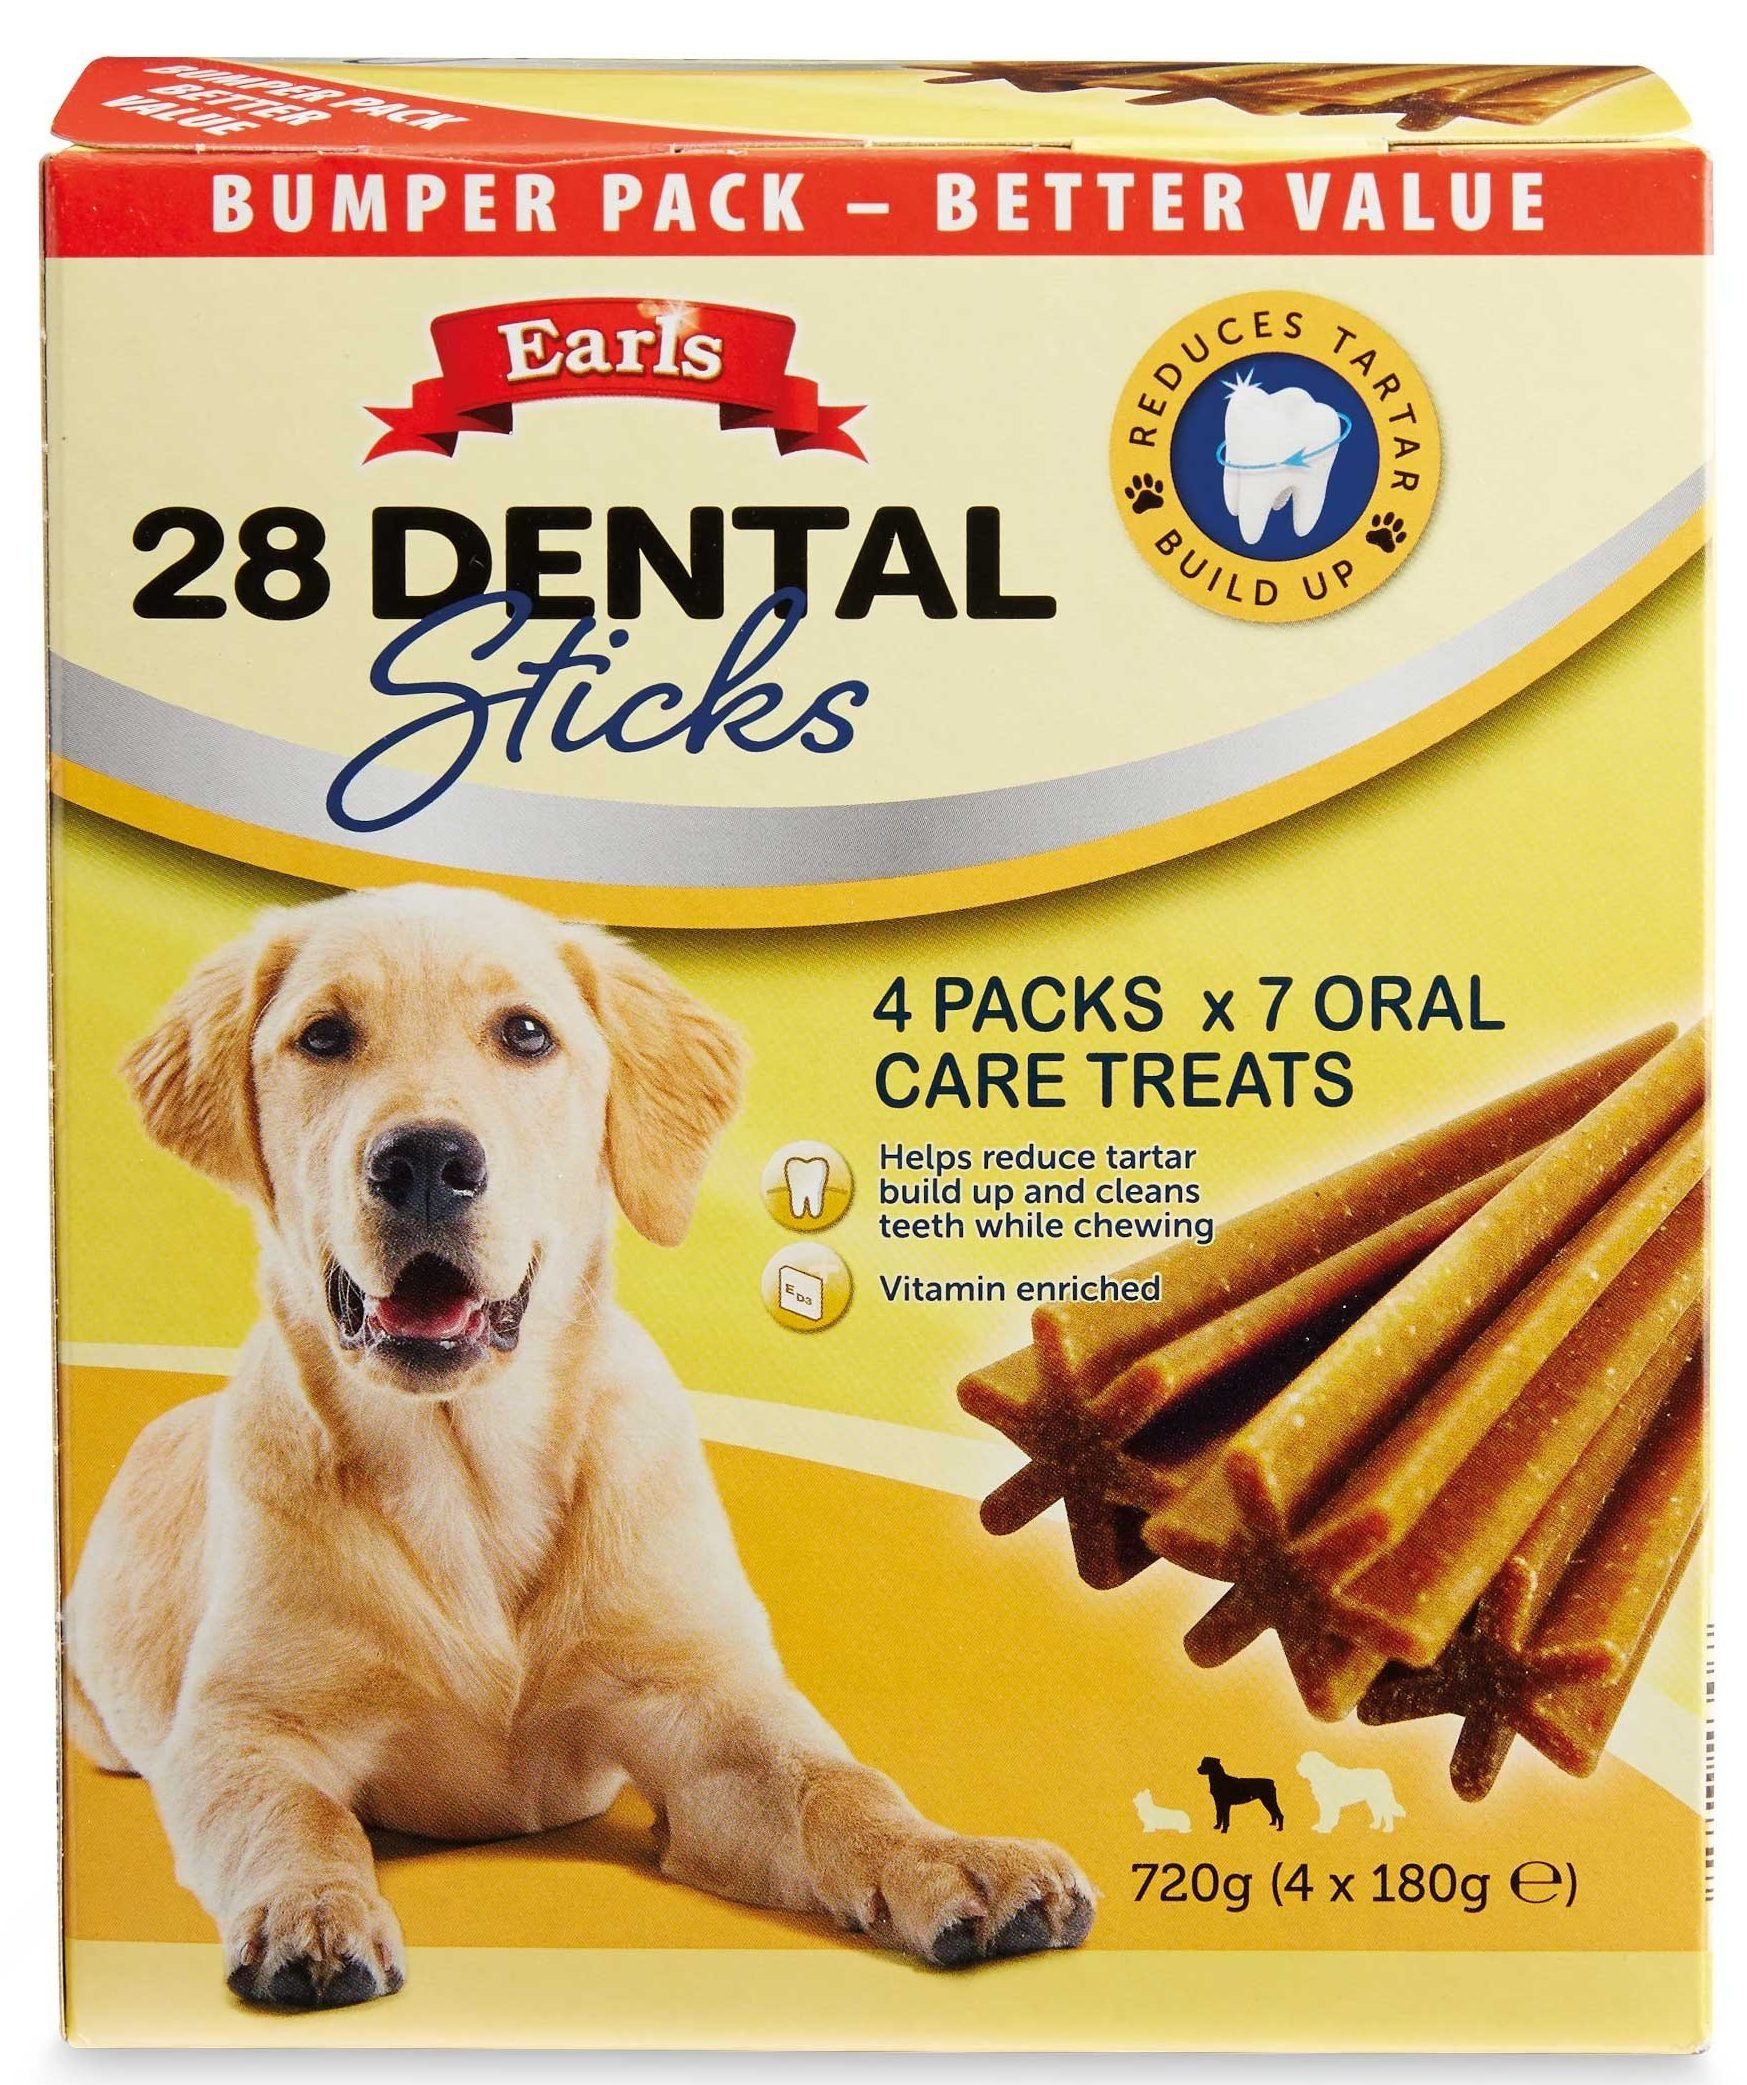 Aldi can help you to treat your pooch with these tasty dental sticks